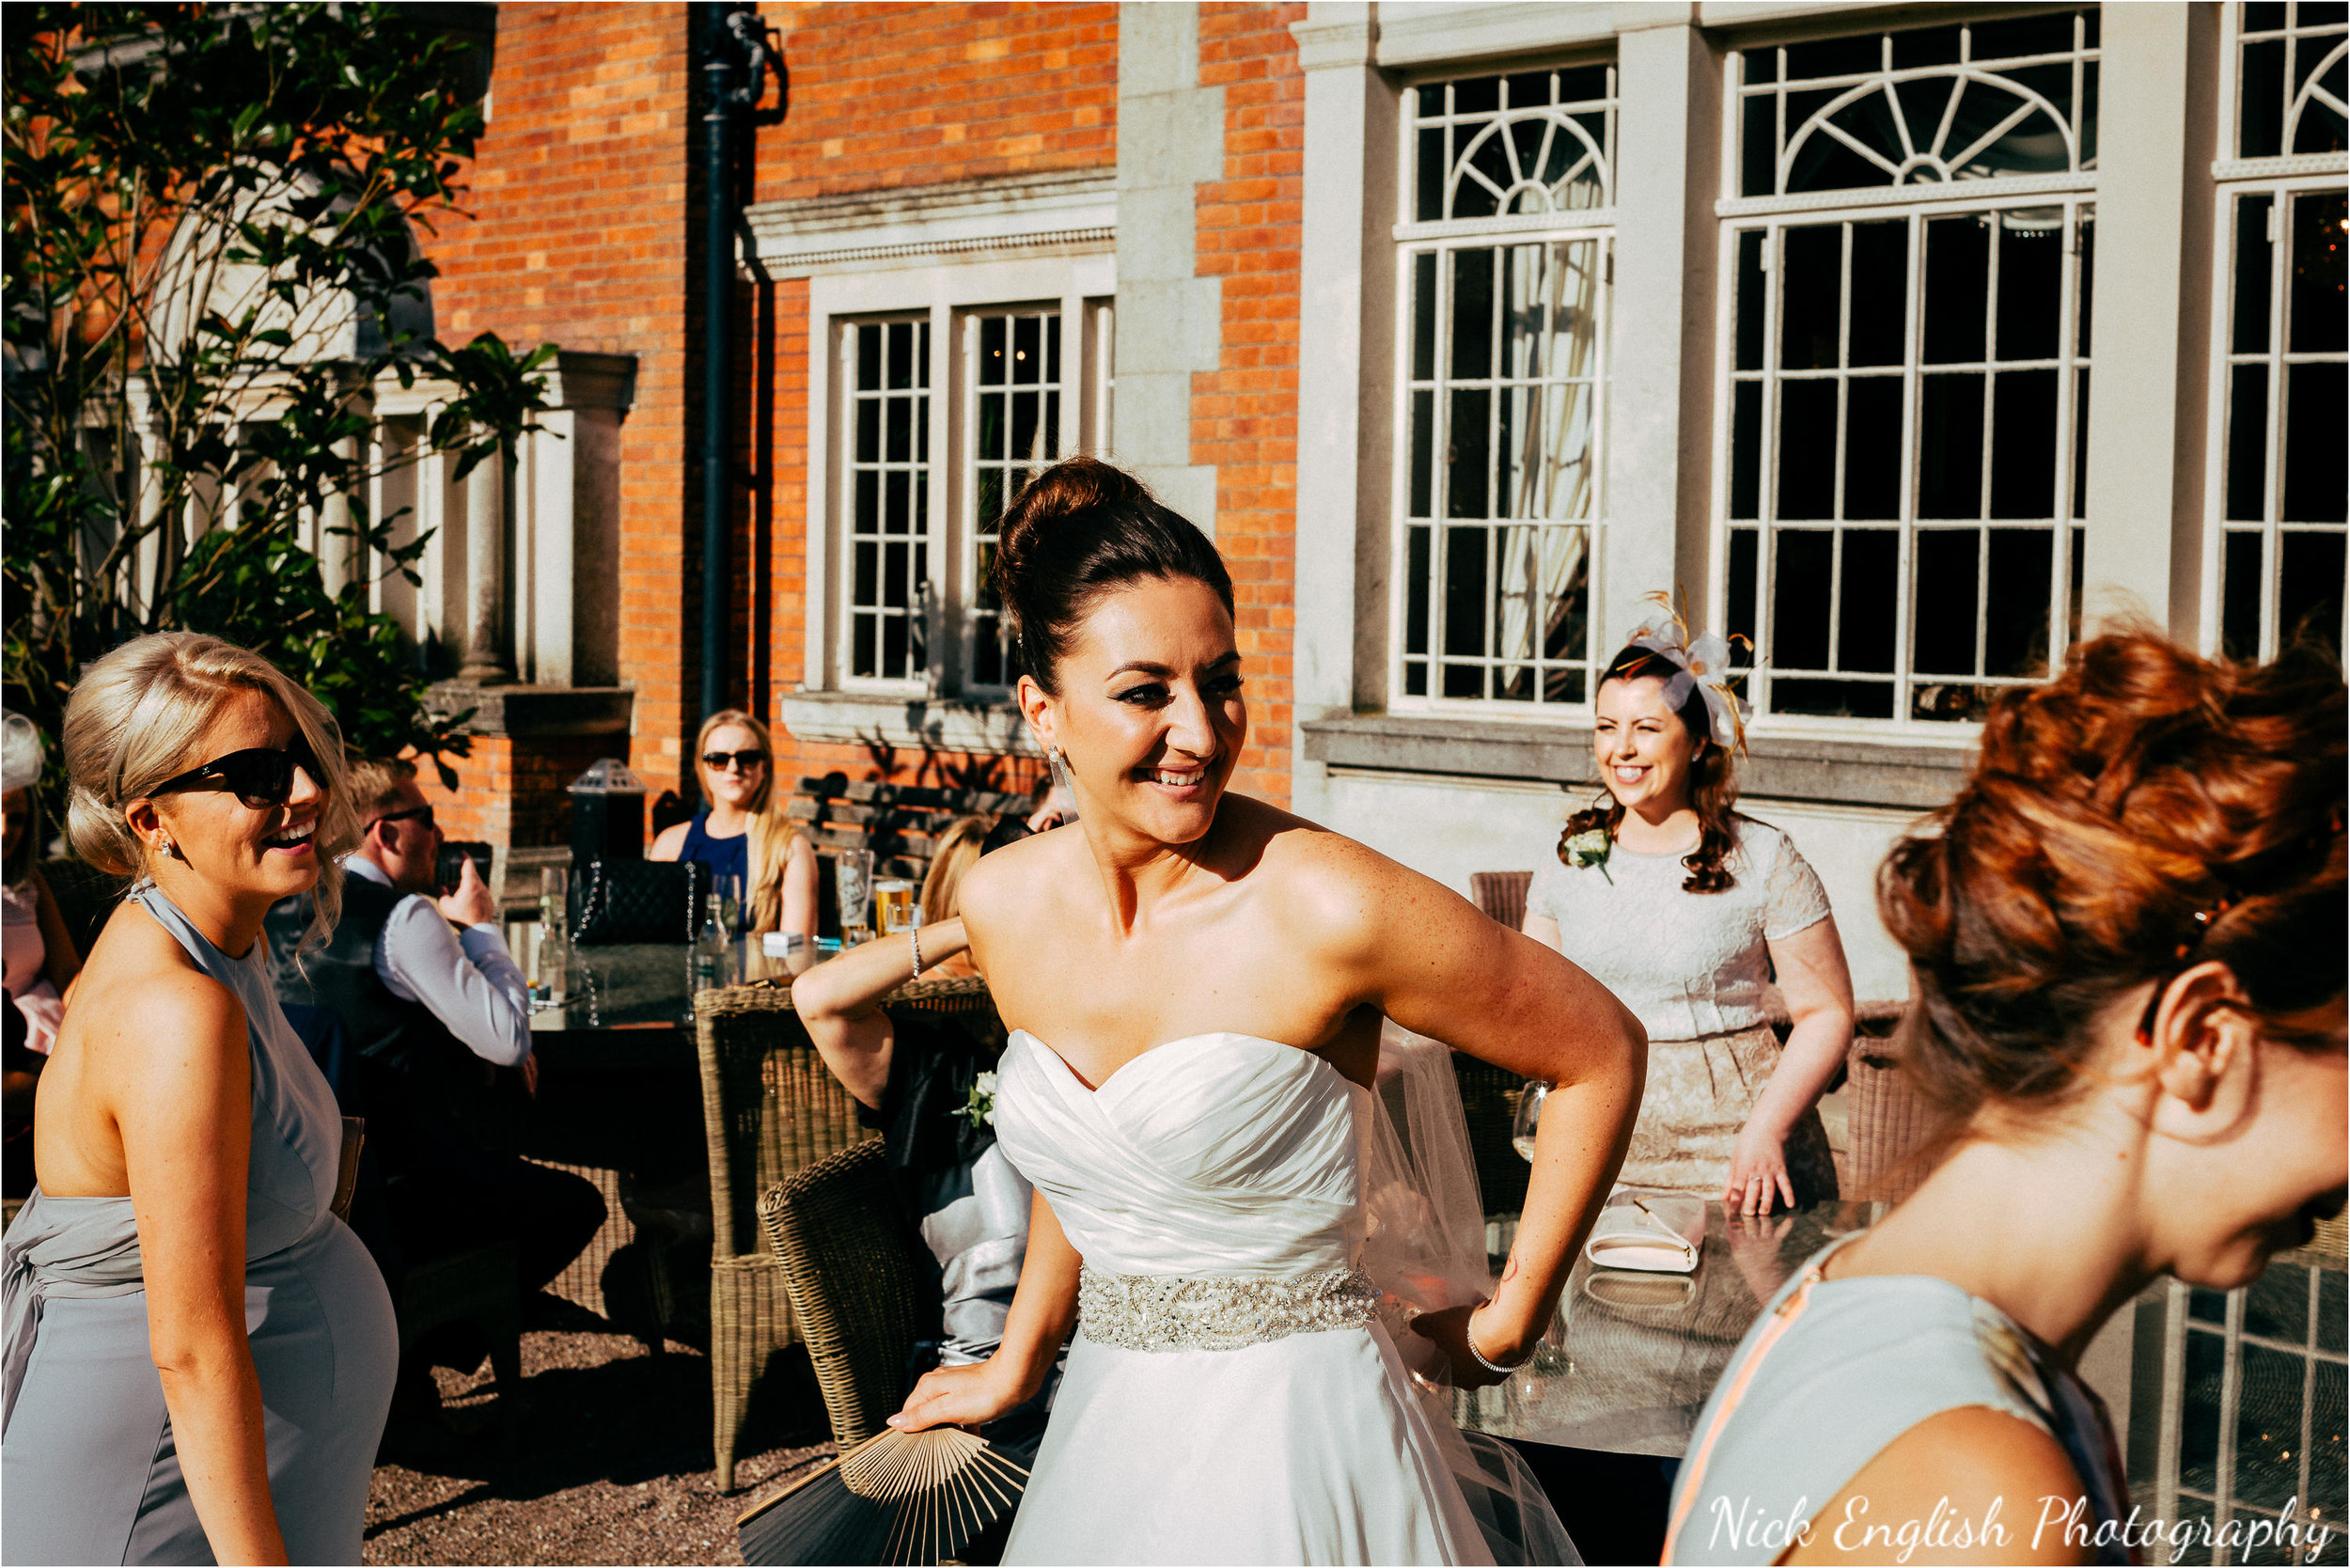 Eaves_Hall_Wedding_Photographs_Nick_English_Photography-158.jpg